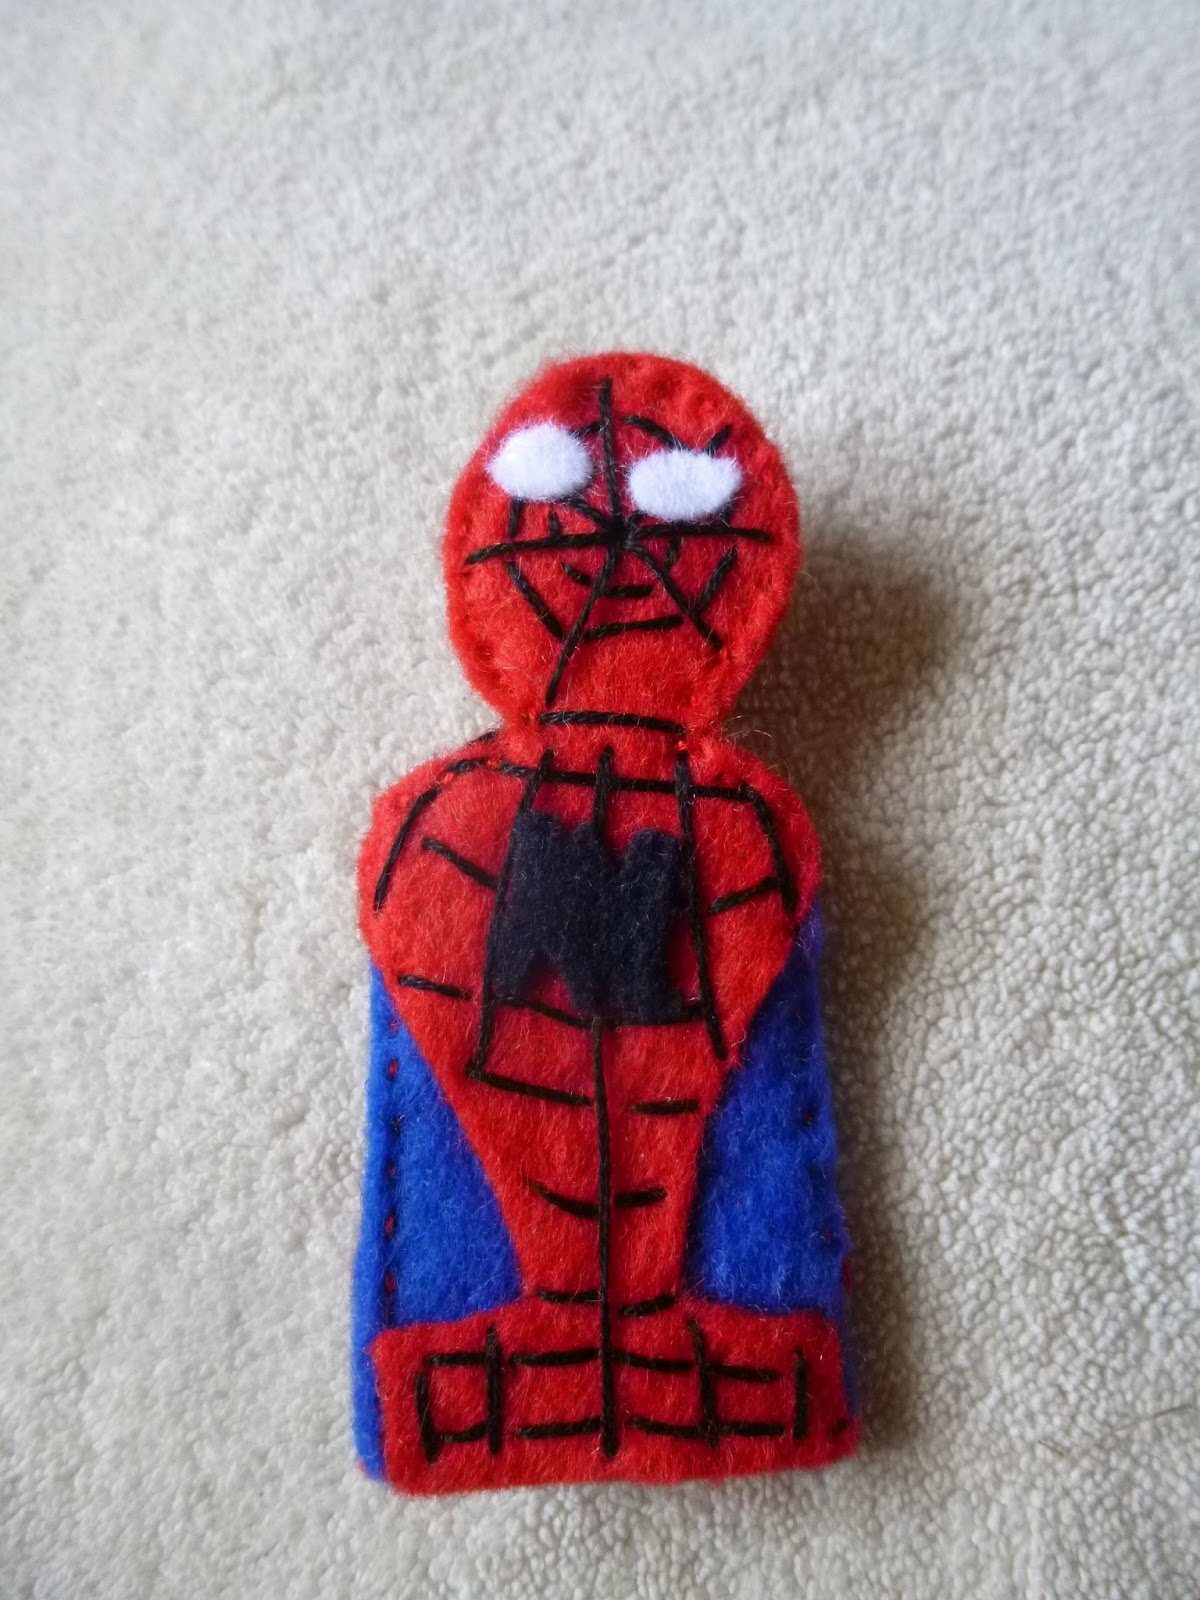 My Guide To Home Made Superhero Party Crafts And Games